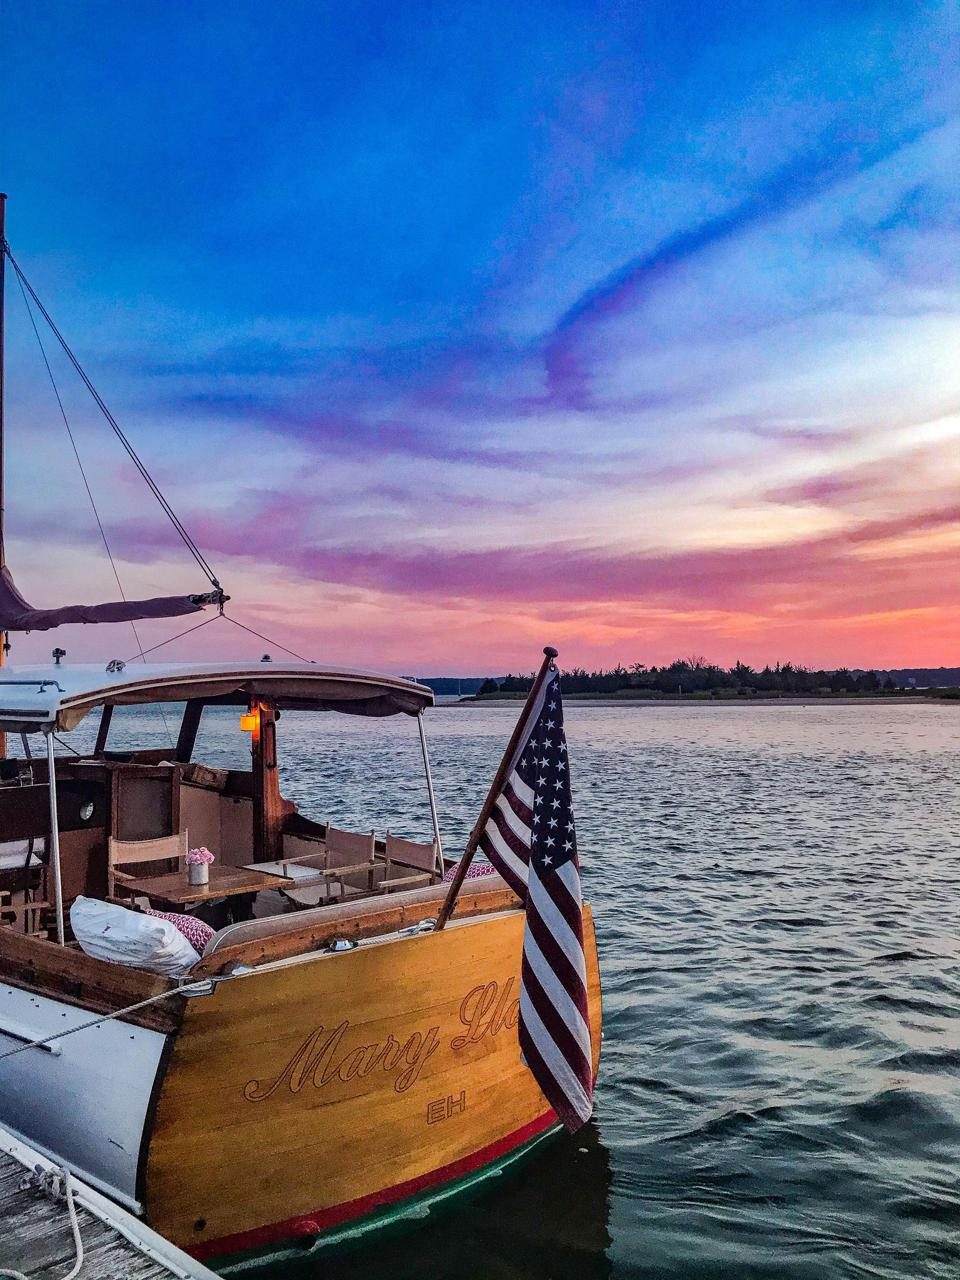 Boat in harbor at sunset with American flag.